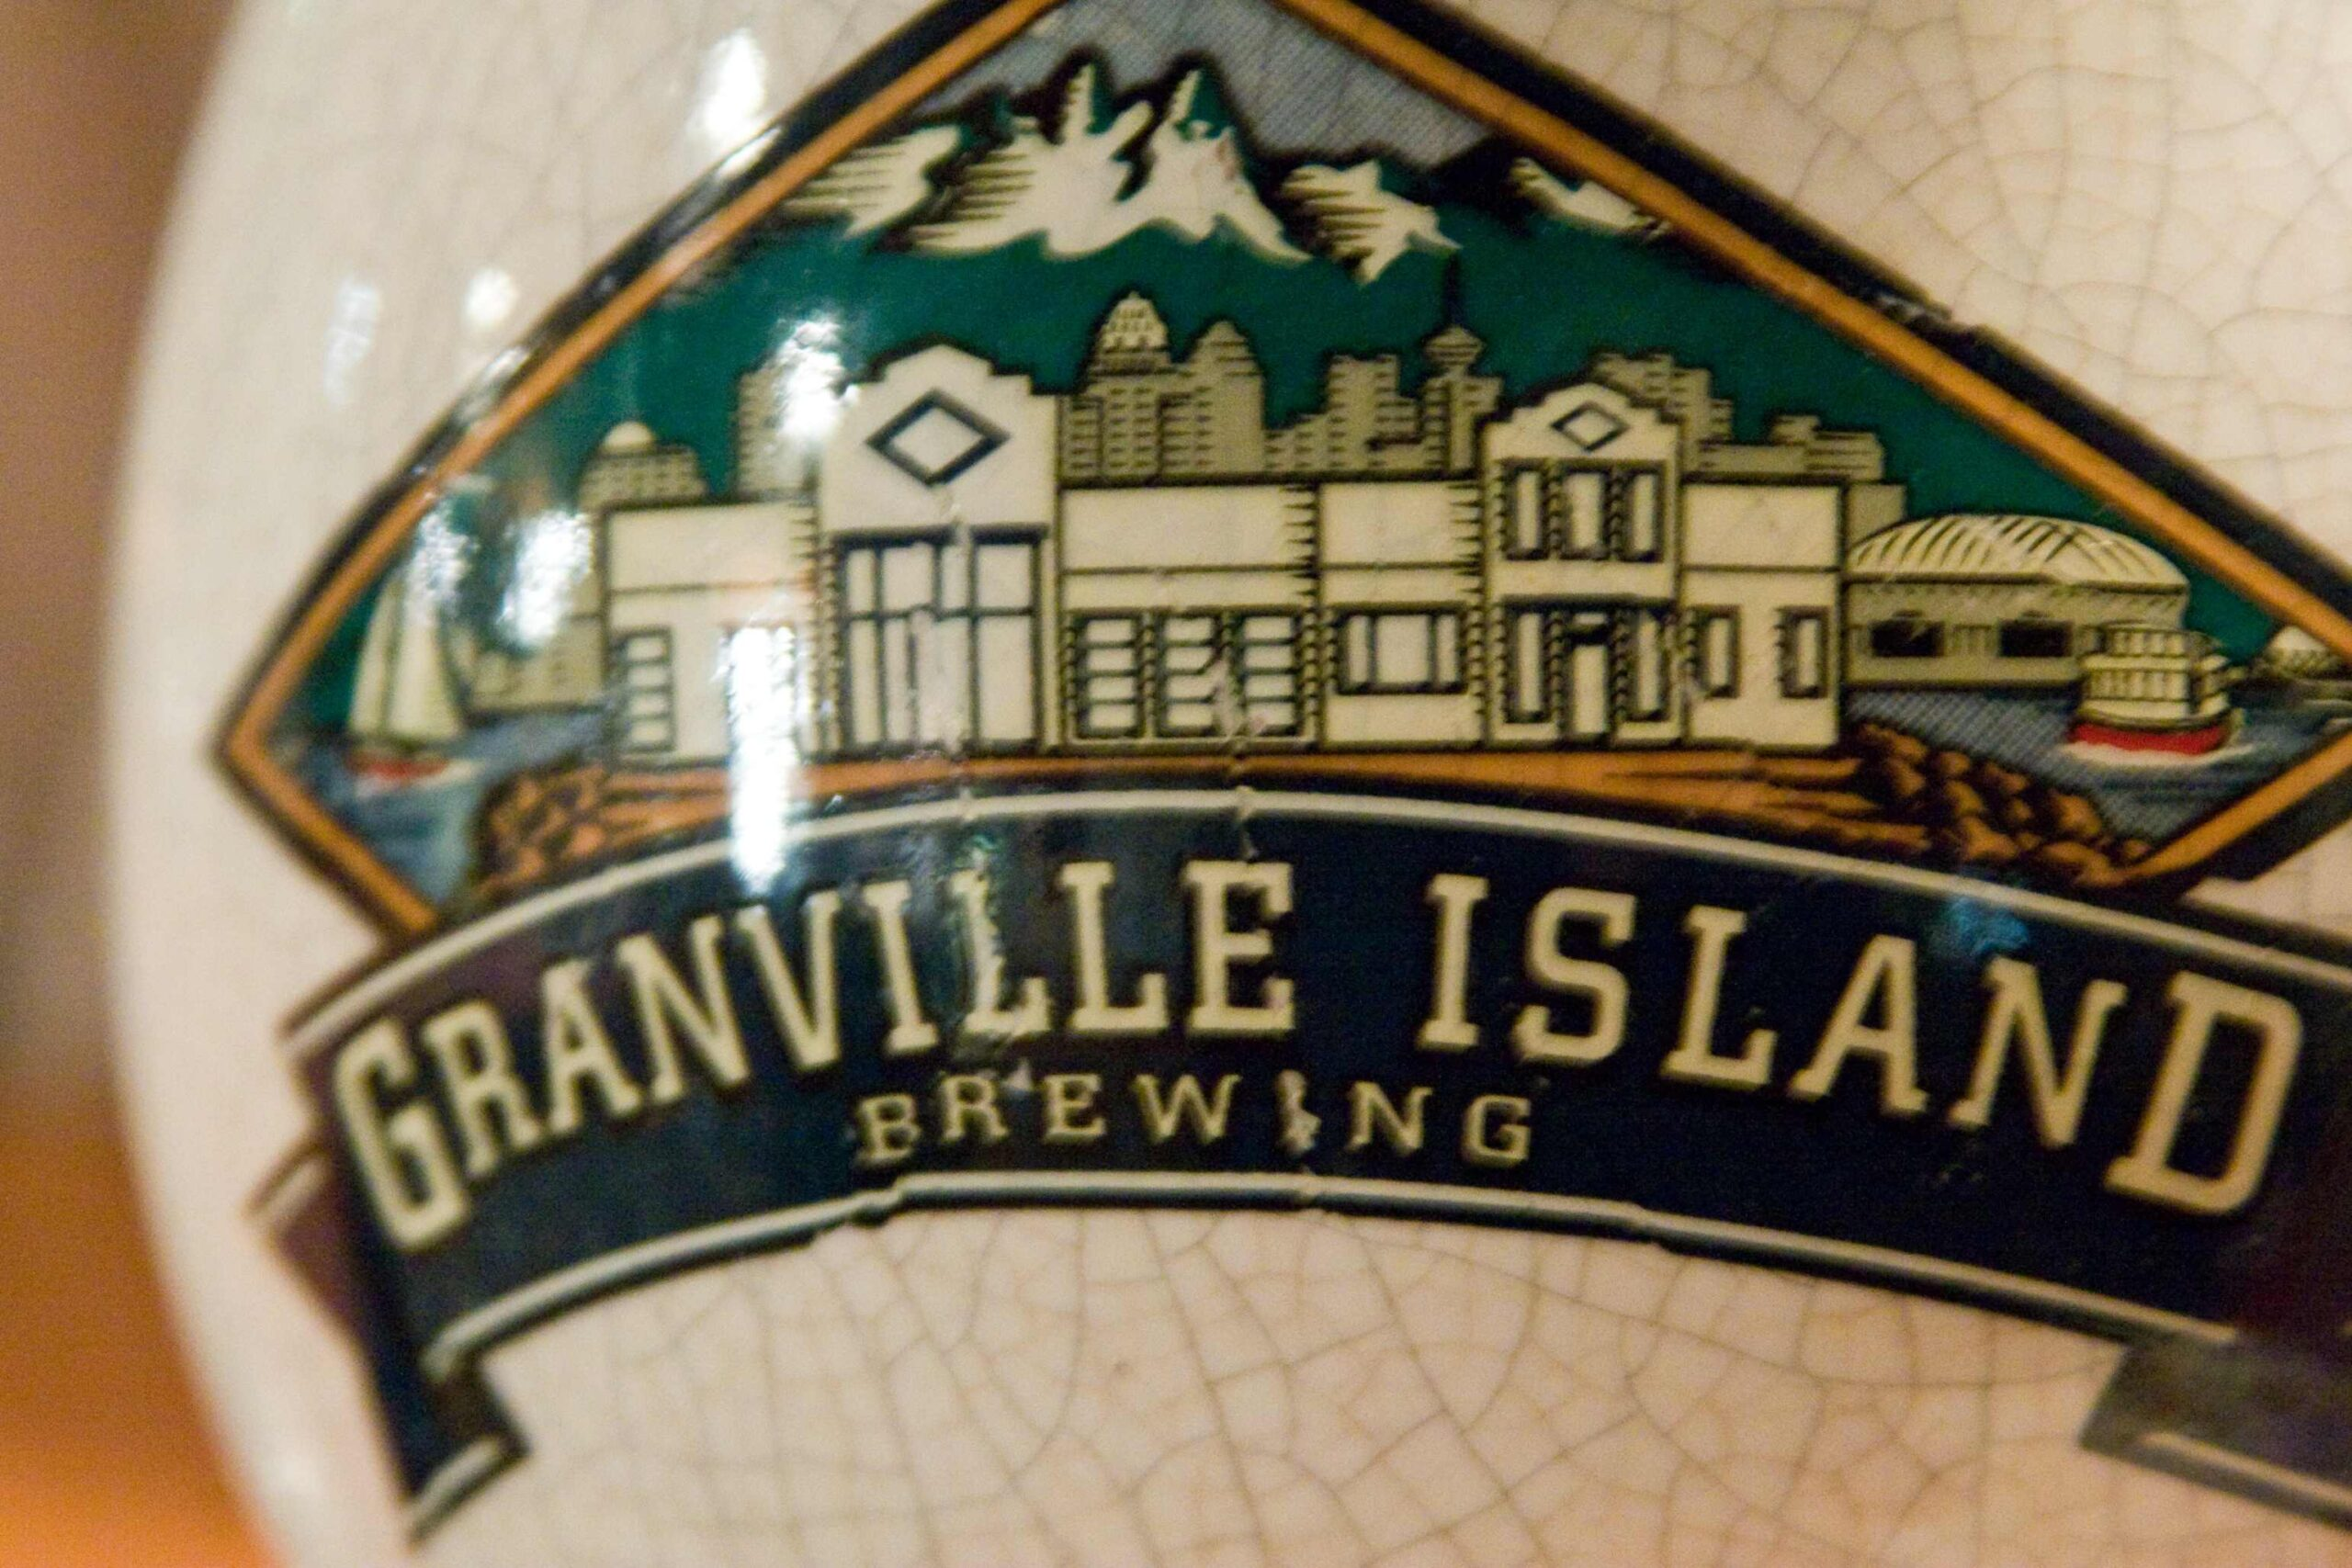 Fausses microbrasseries: Granville: Photo par MoMoVan sous CC BY 2.0